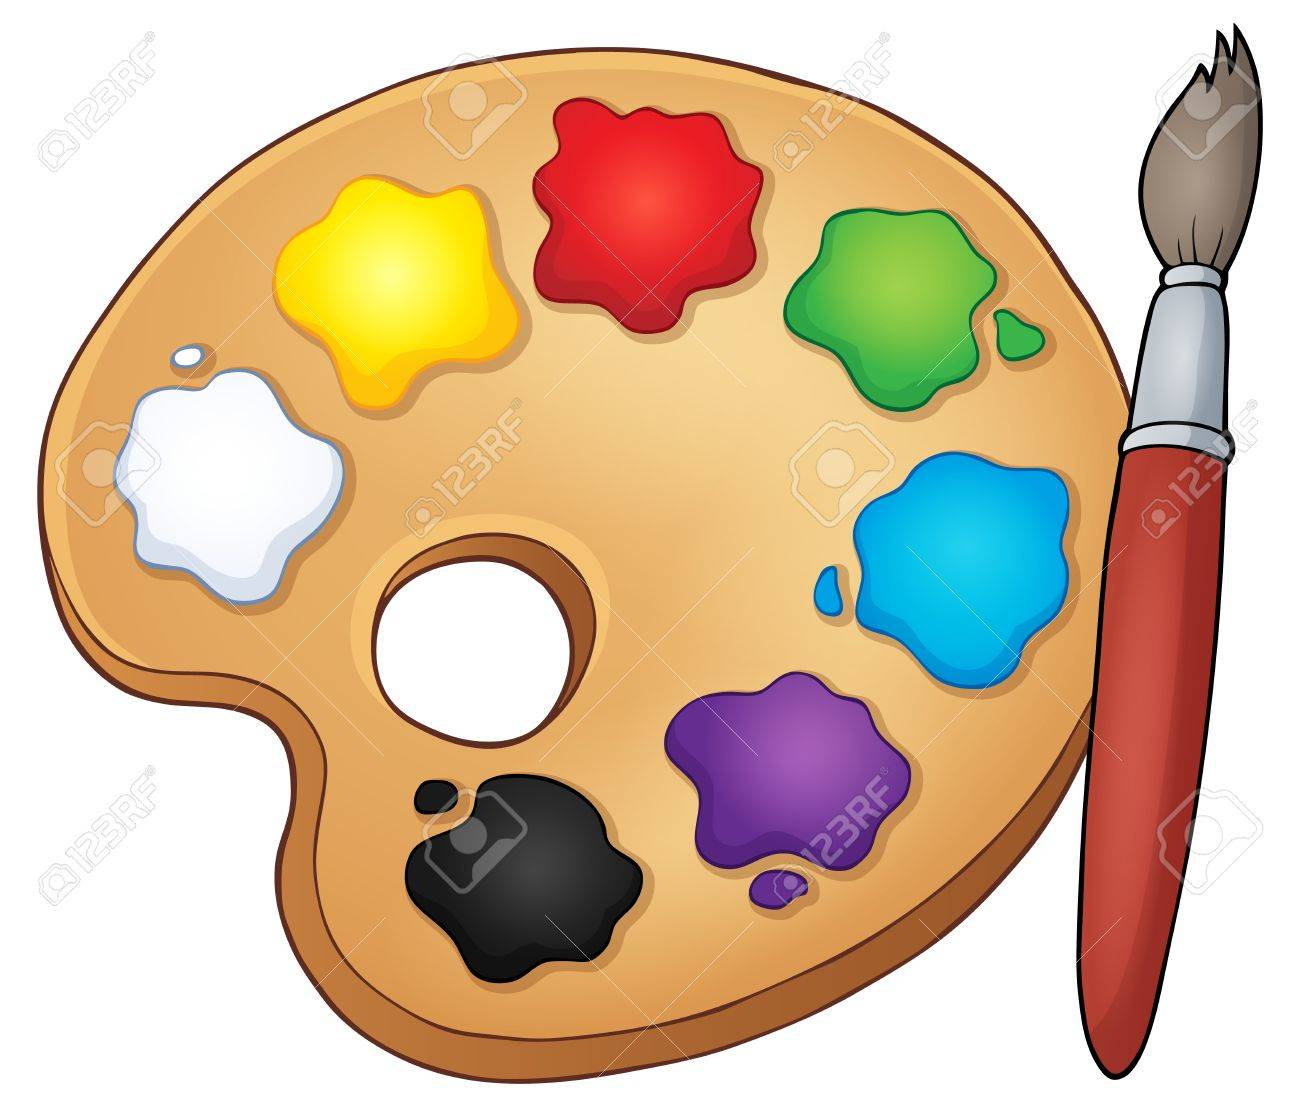 Paint Palette Theme Image Royalty Free Cliparts Vectors And Stock